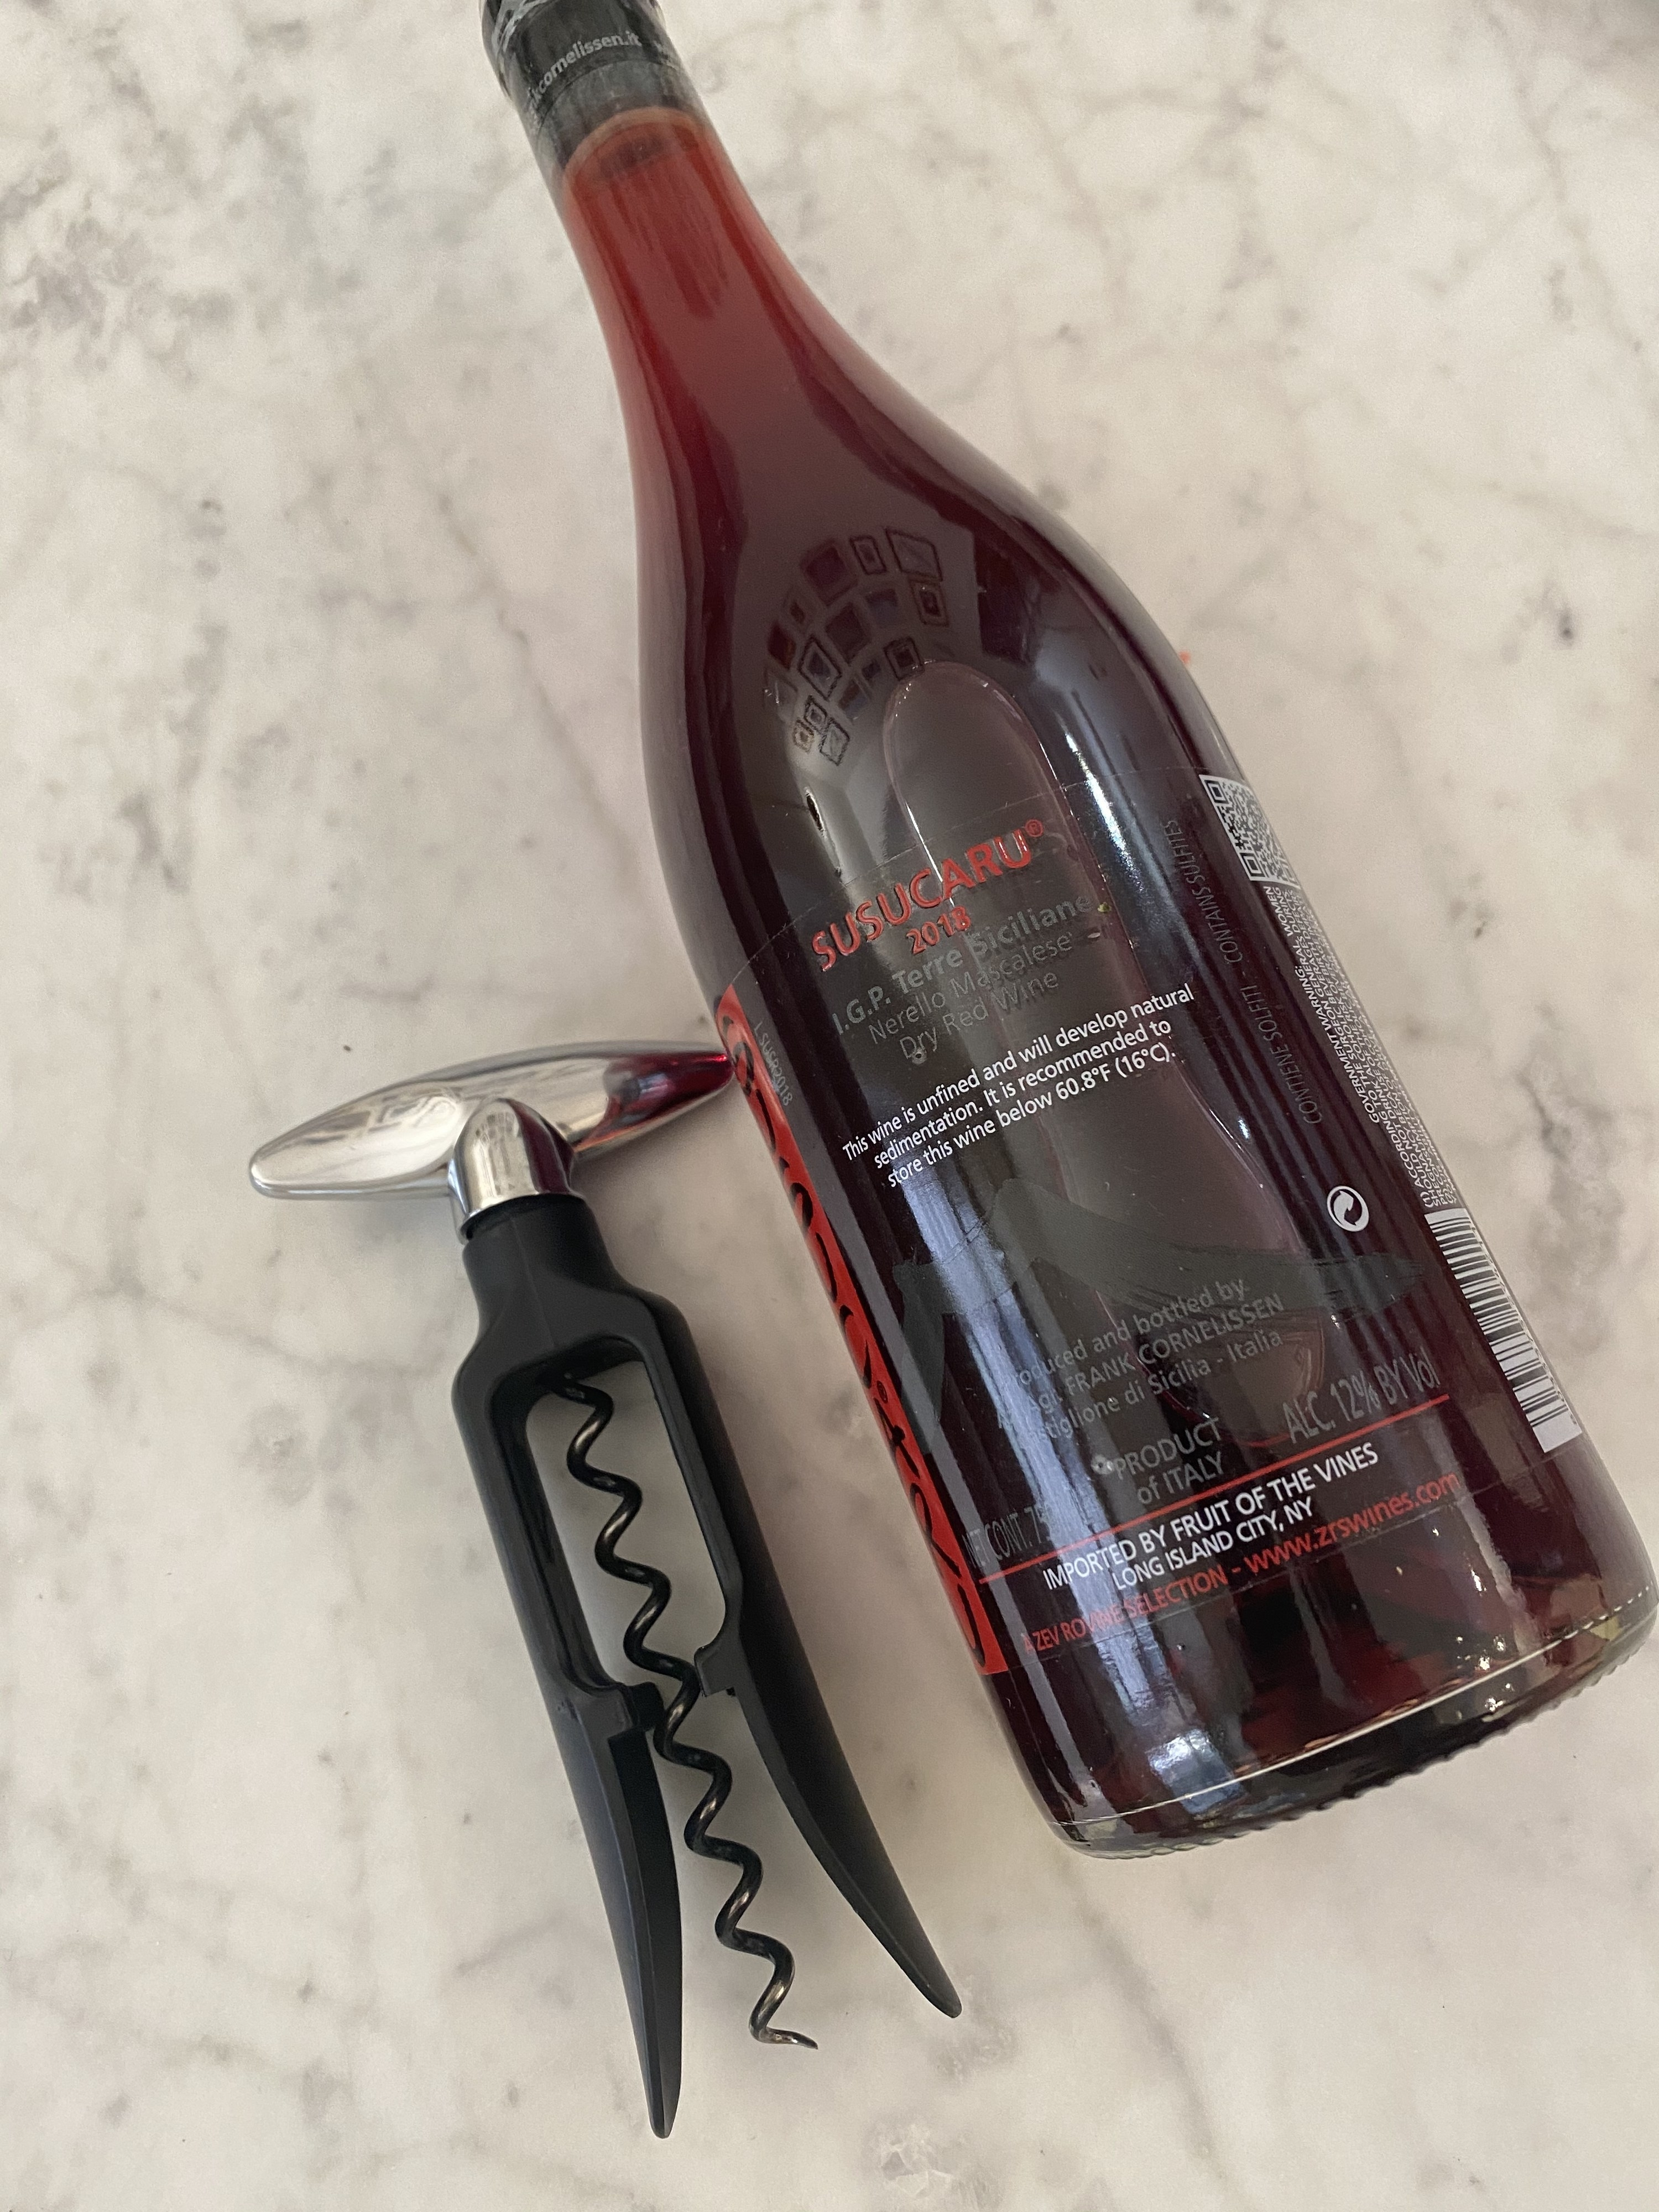 A bottle of red wine next to a corkscrew on a countertop.